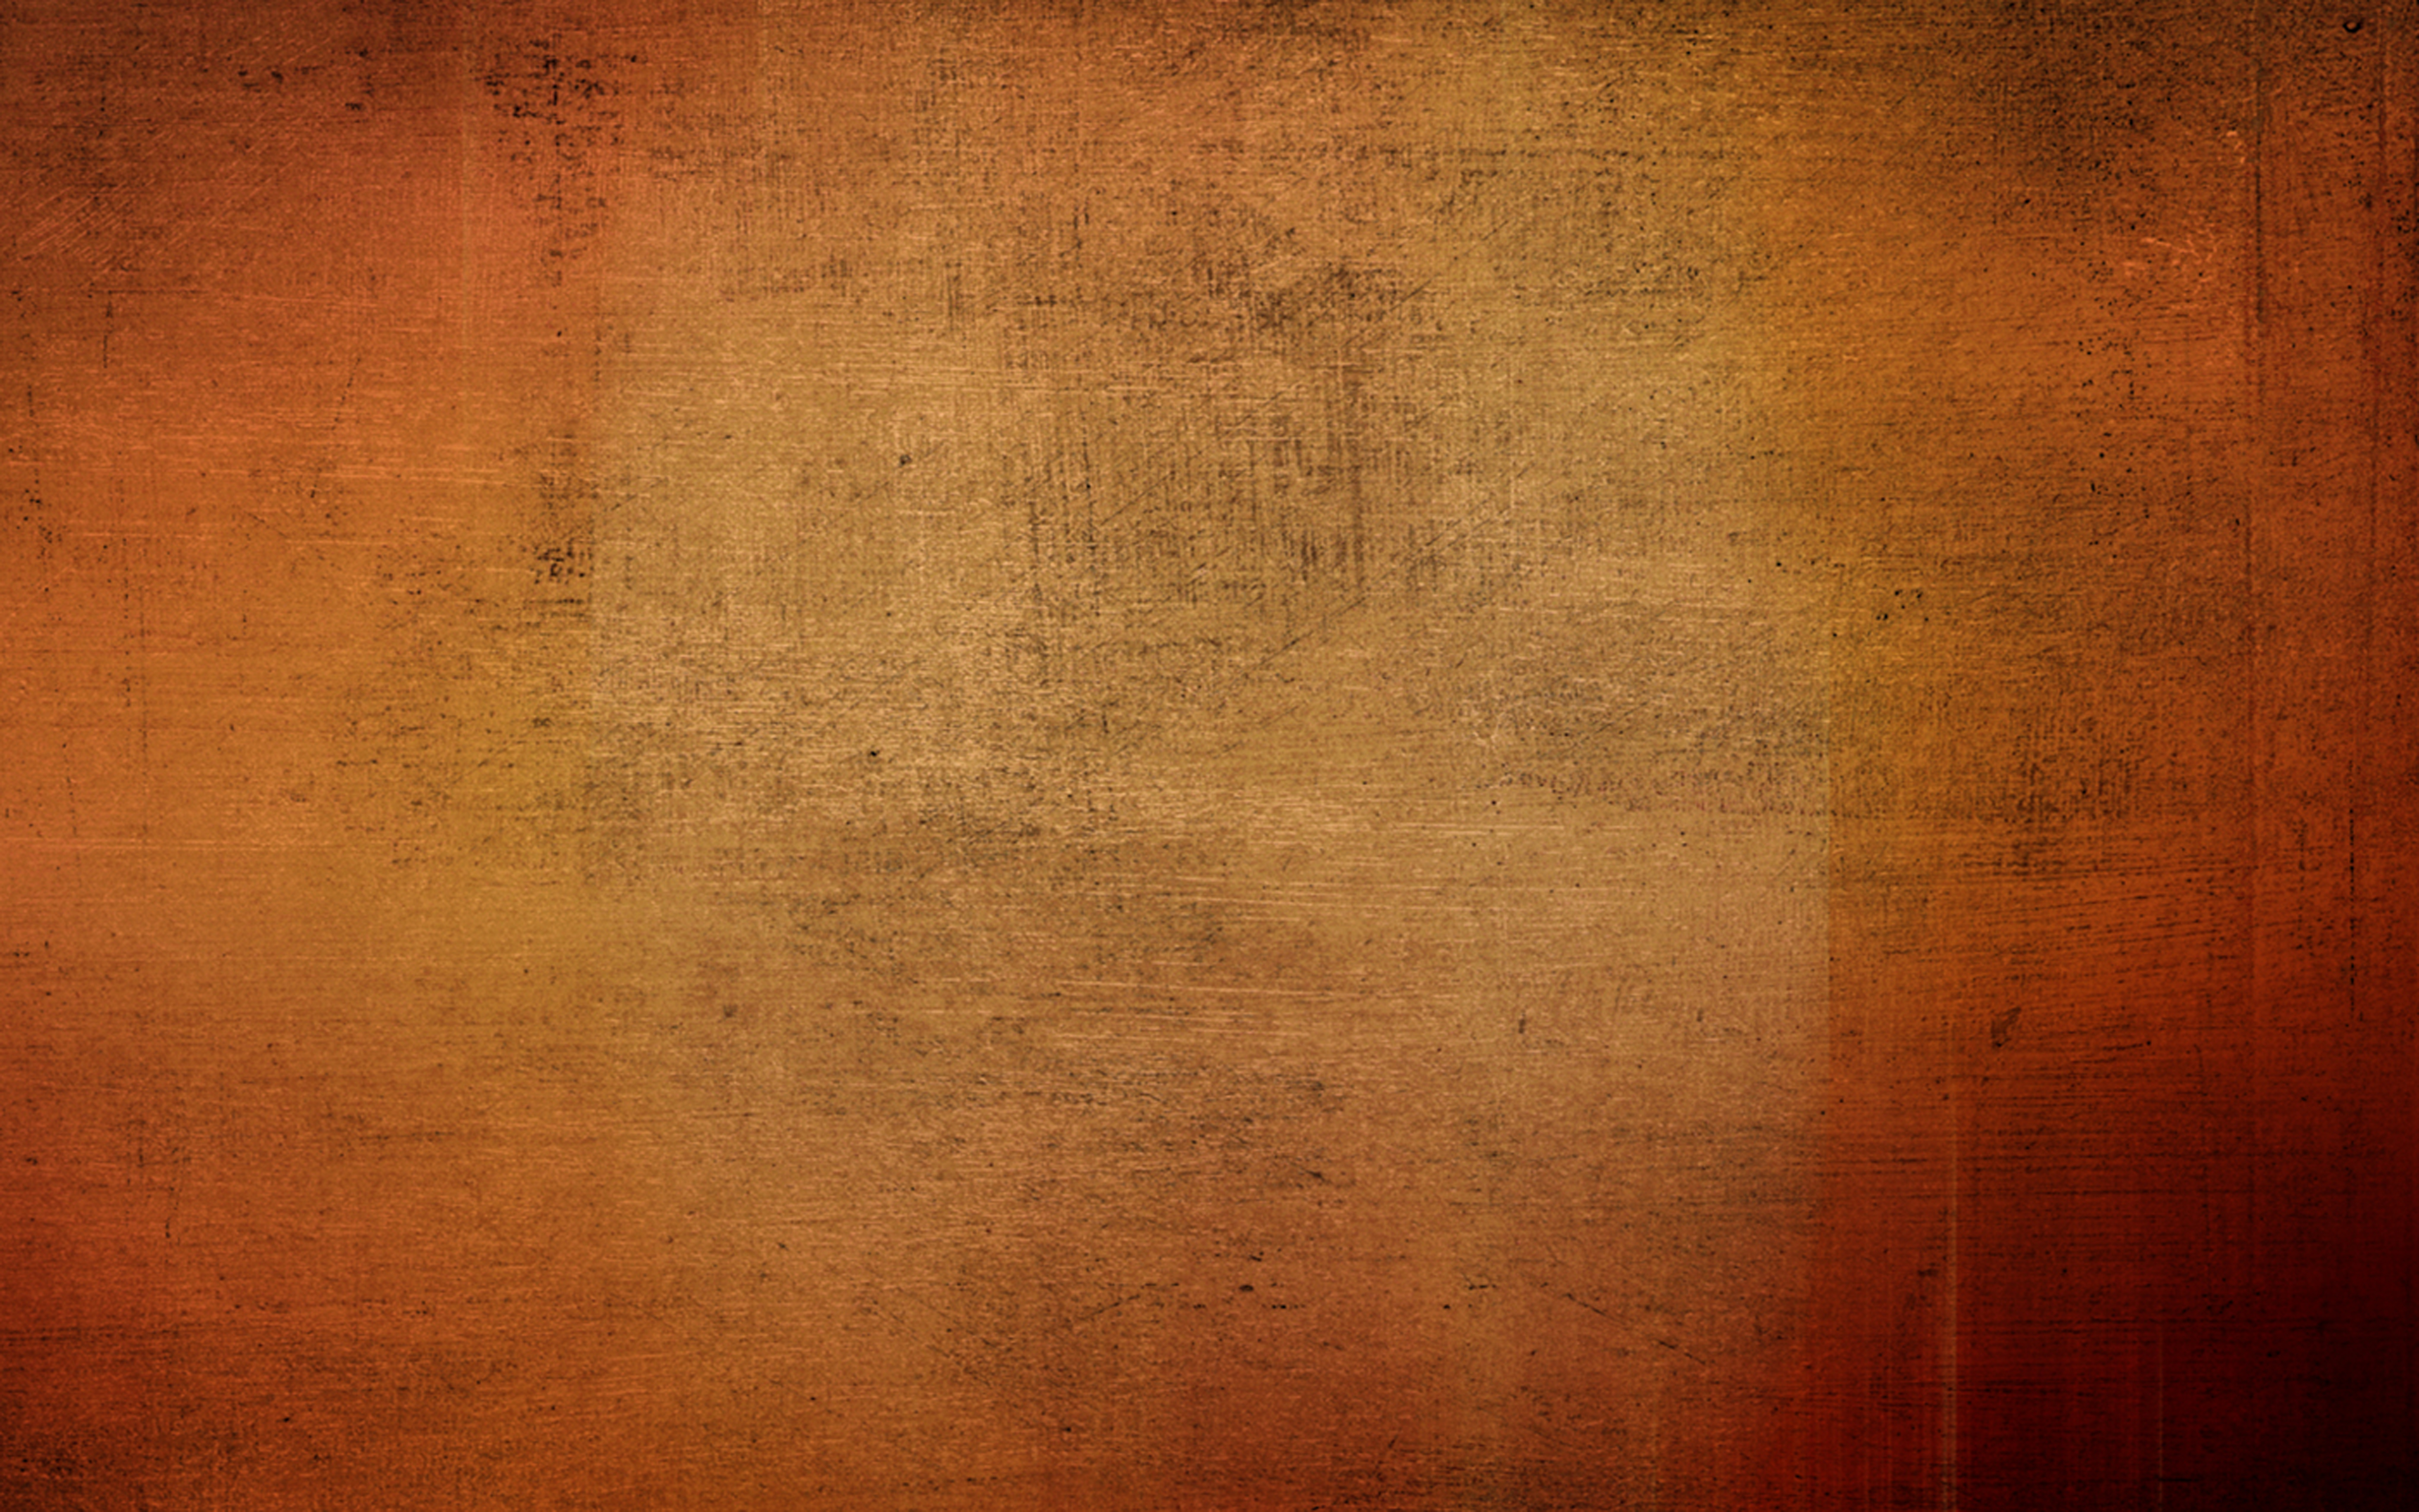 Background Designs For Projects Index of /Spring08/155...